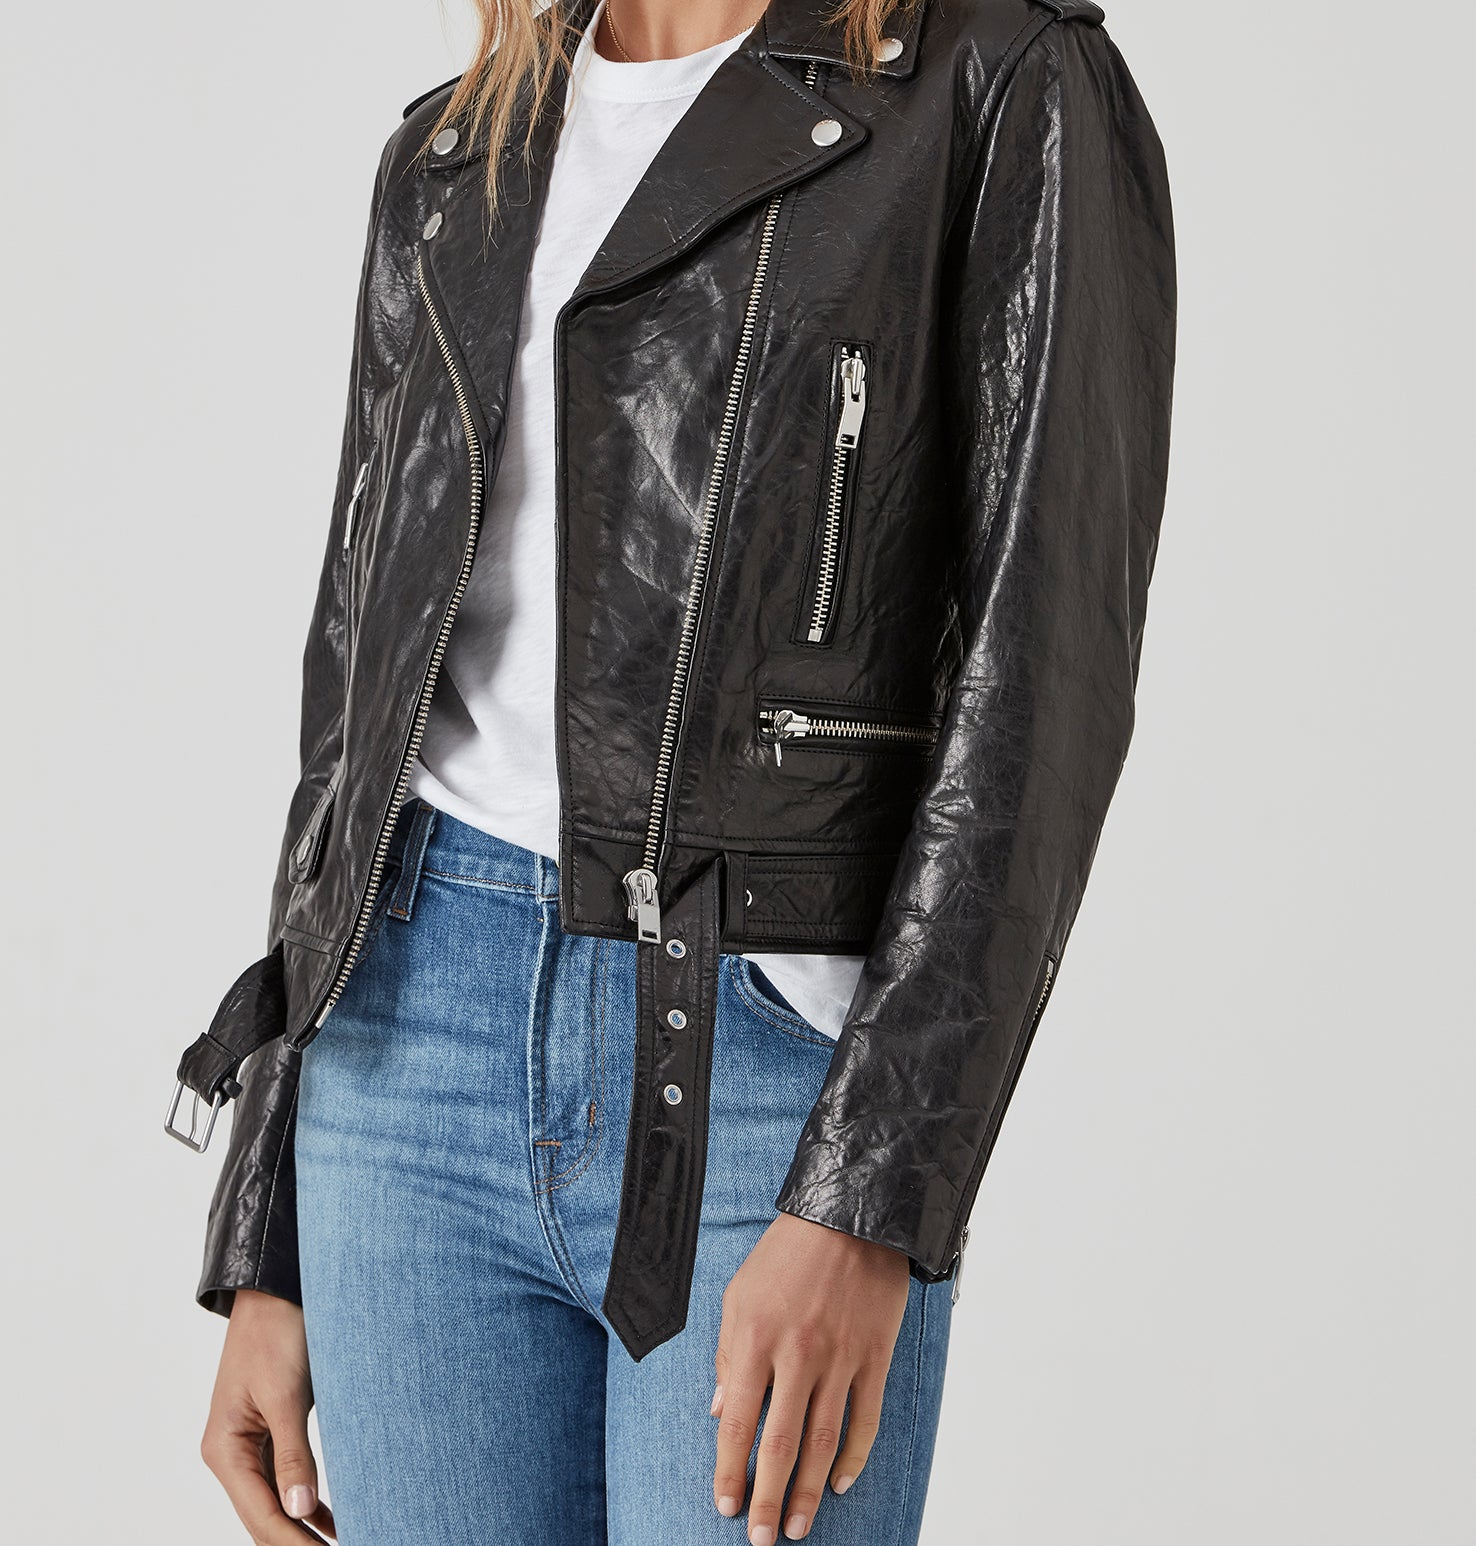 New Yorker Jacket